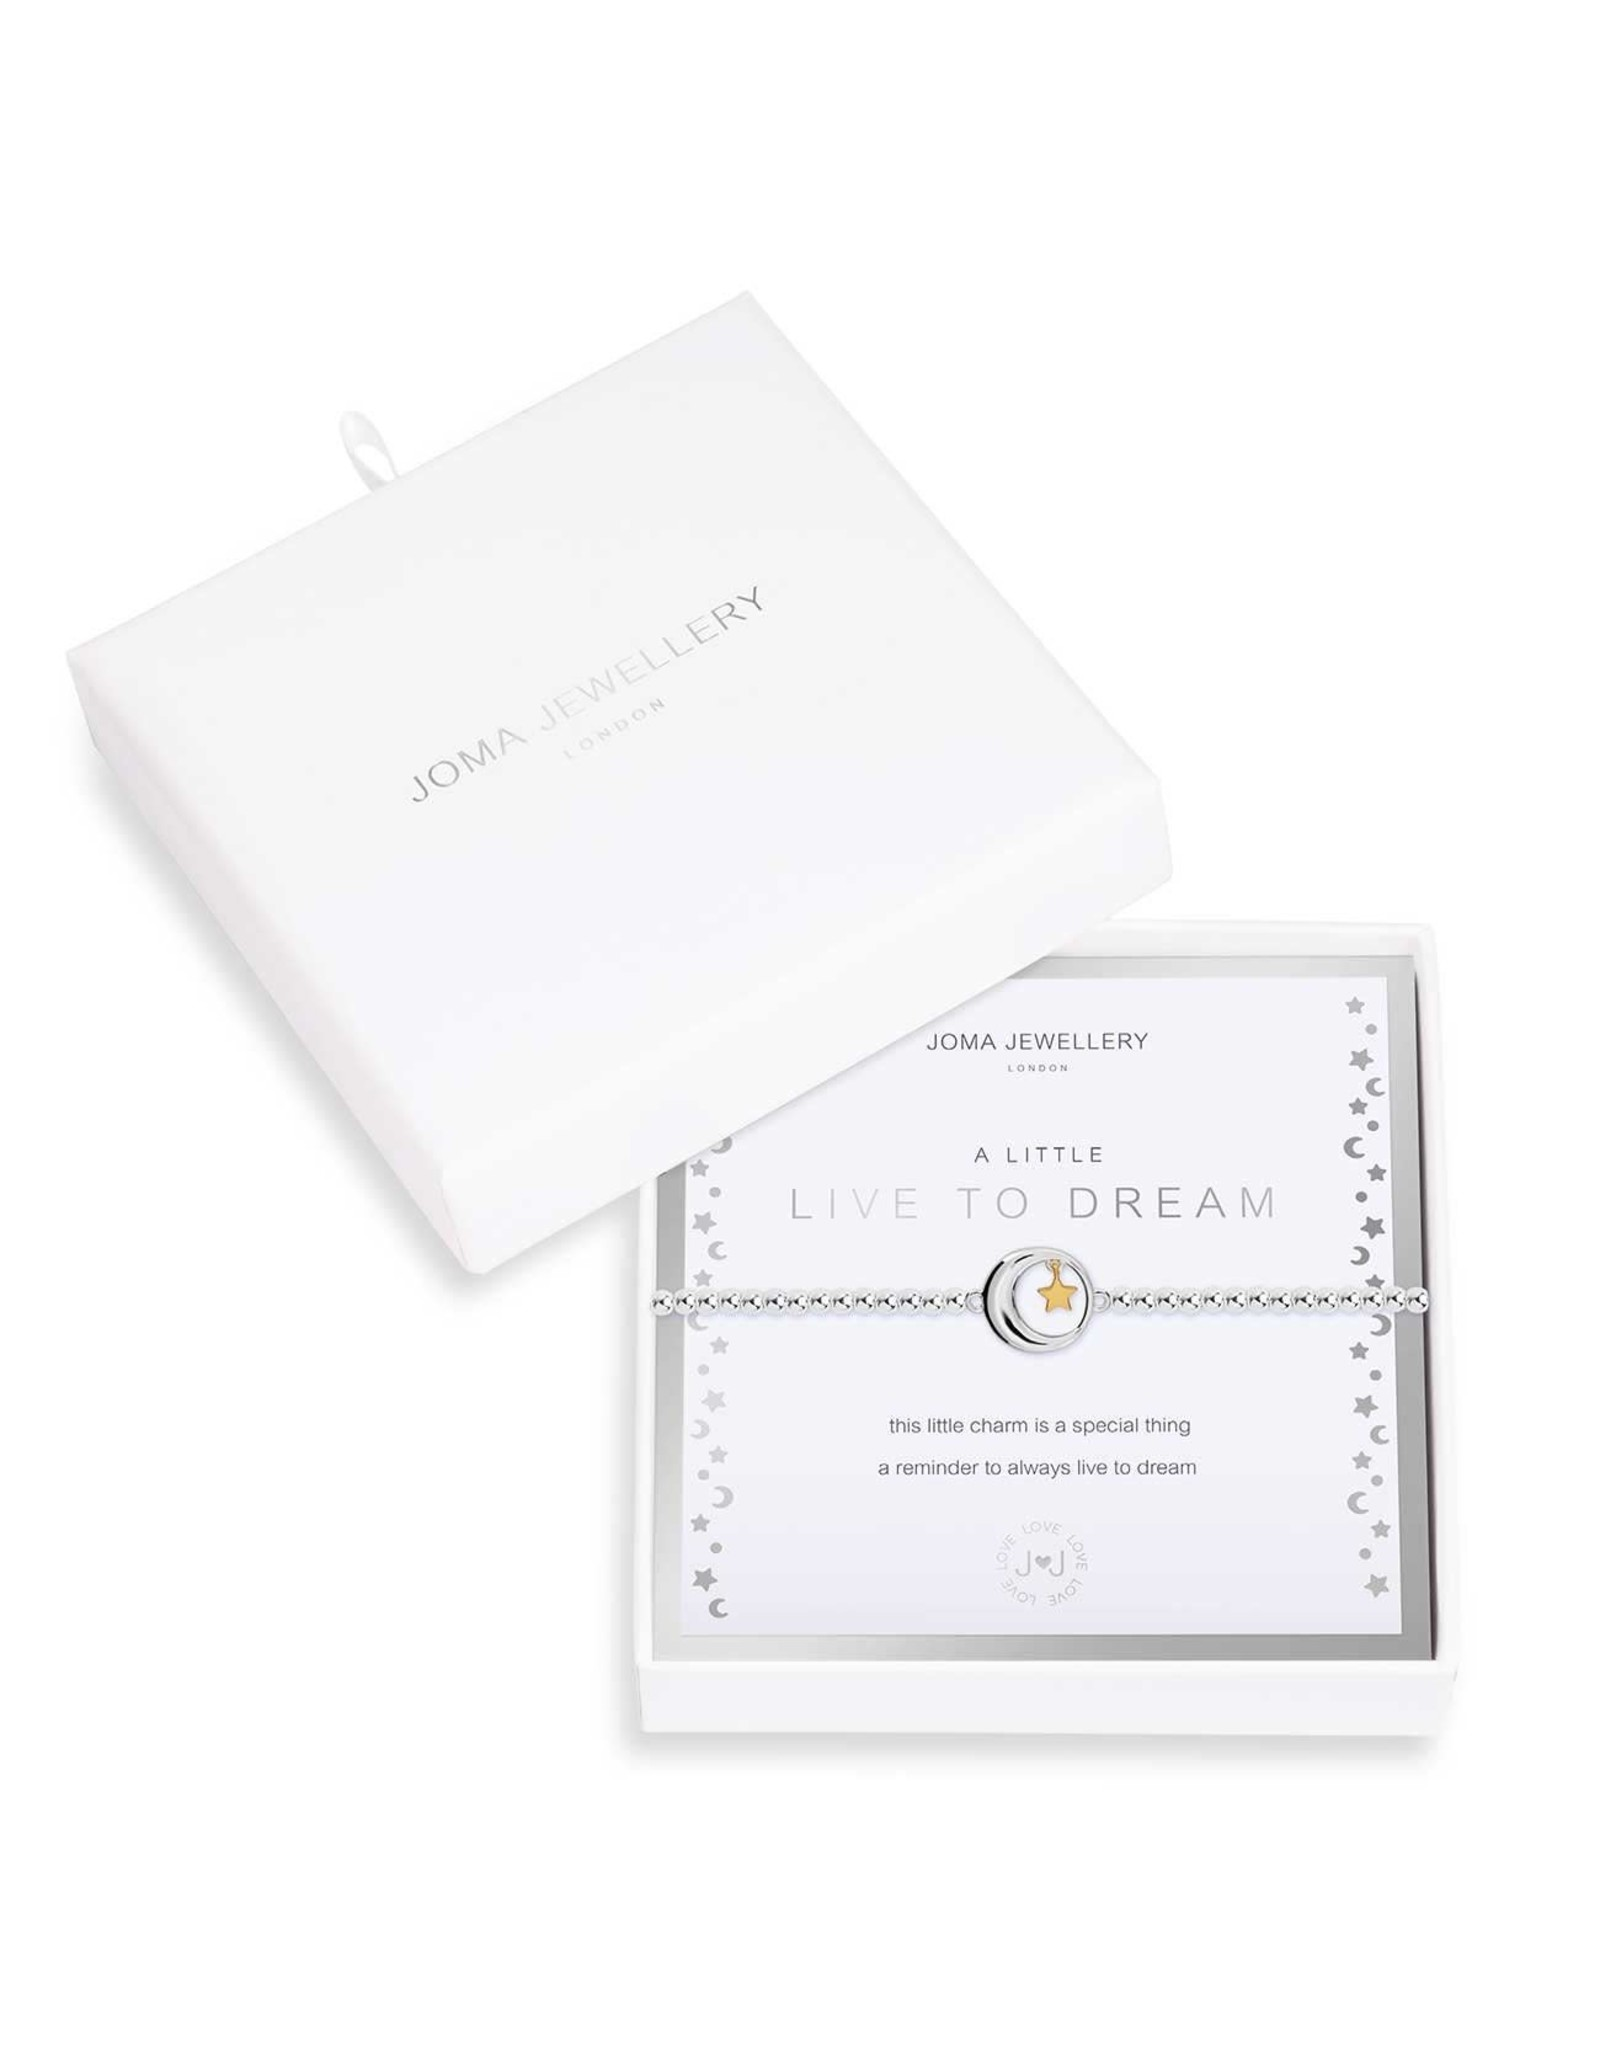 Joma Jewellery Boxed A Little - Live to Dream